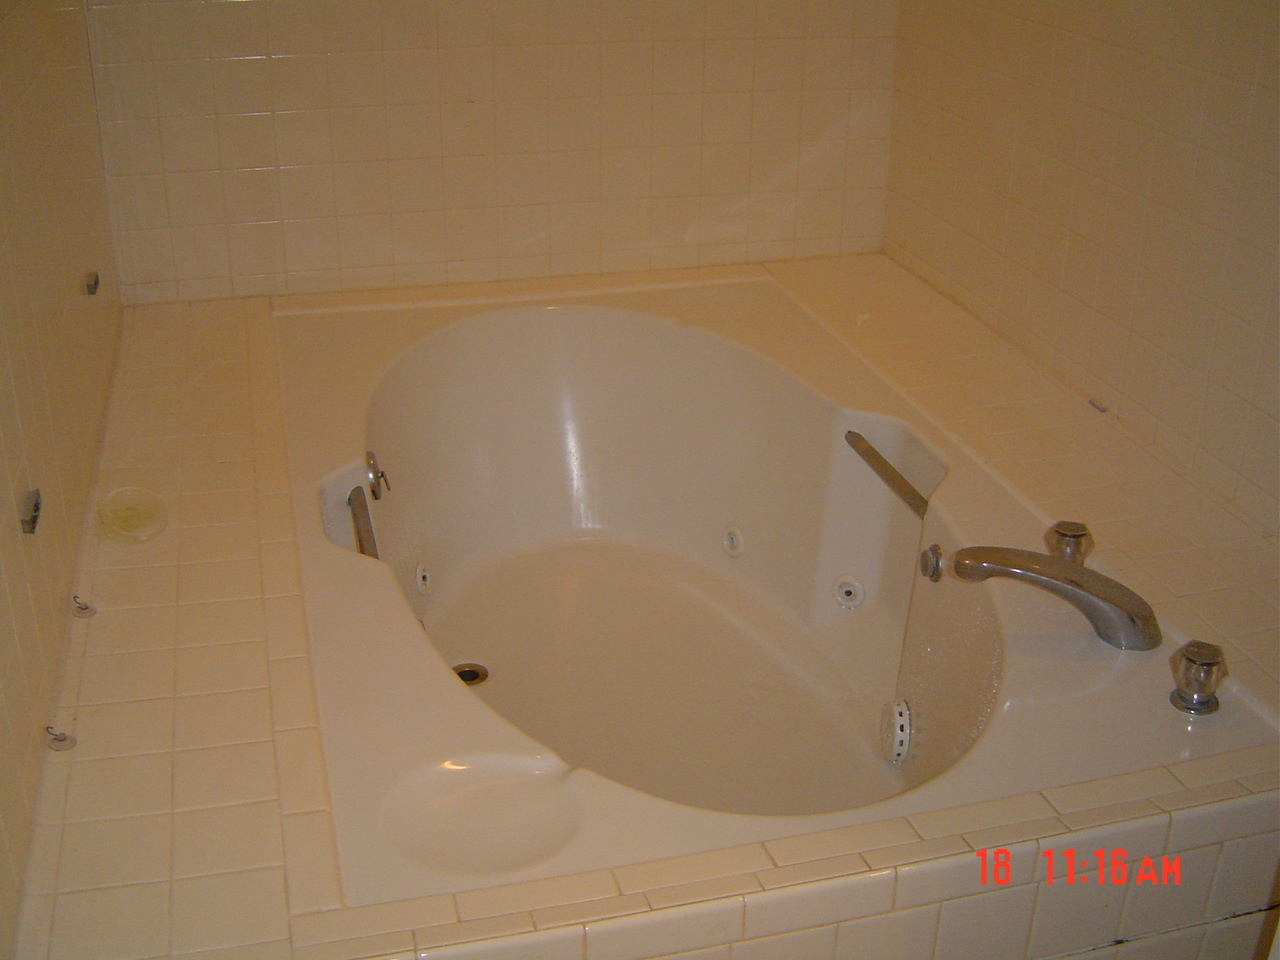 depot whirlpool units lowes faucet bathtub shower drop tub amazing tubs in idea bathtubs home garden